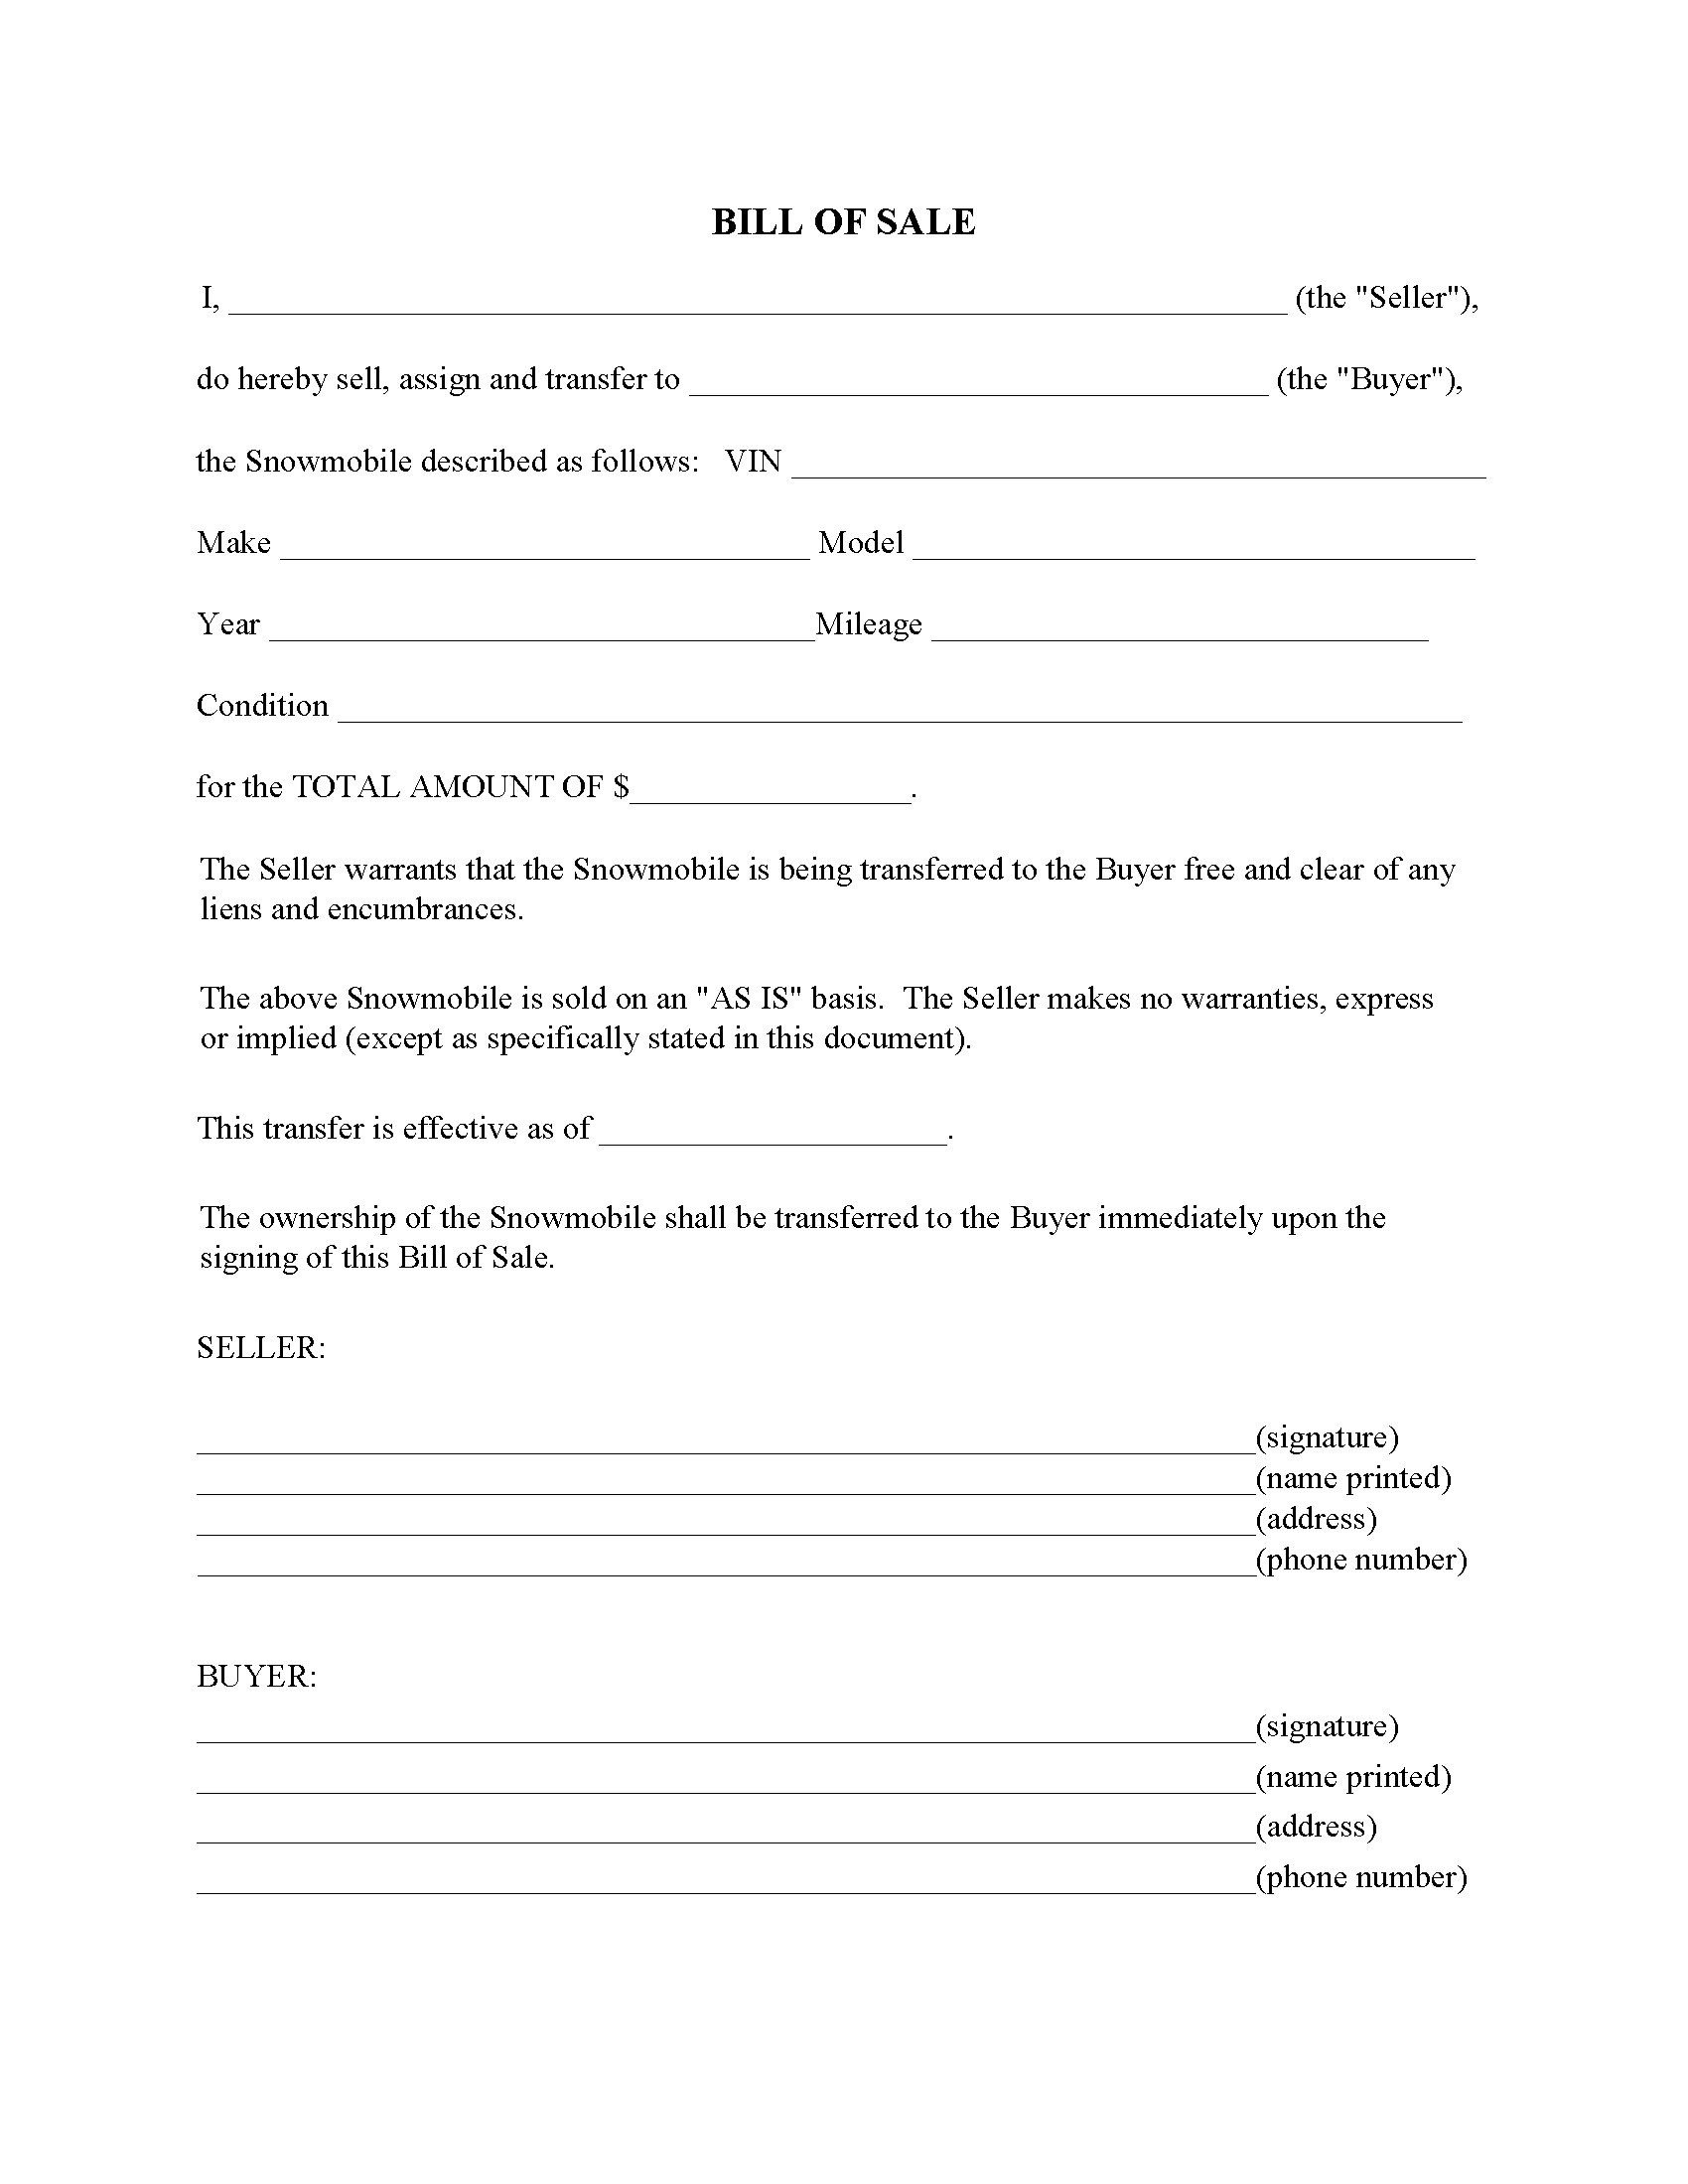 Vermont Snowmobile Bill Of Sale Form Free Printable